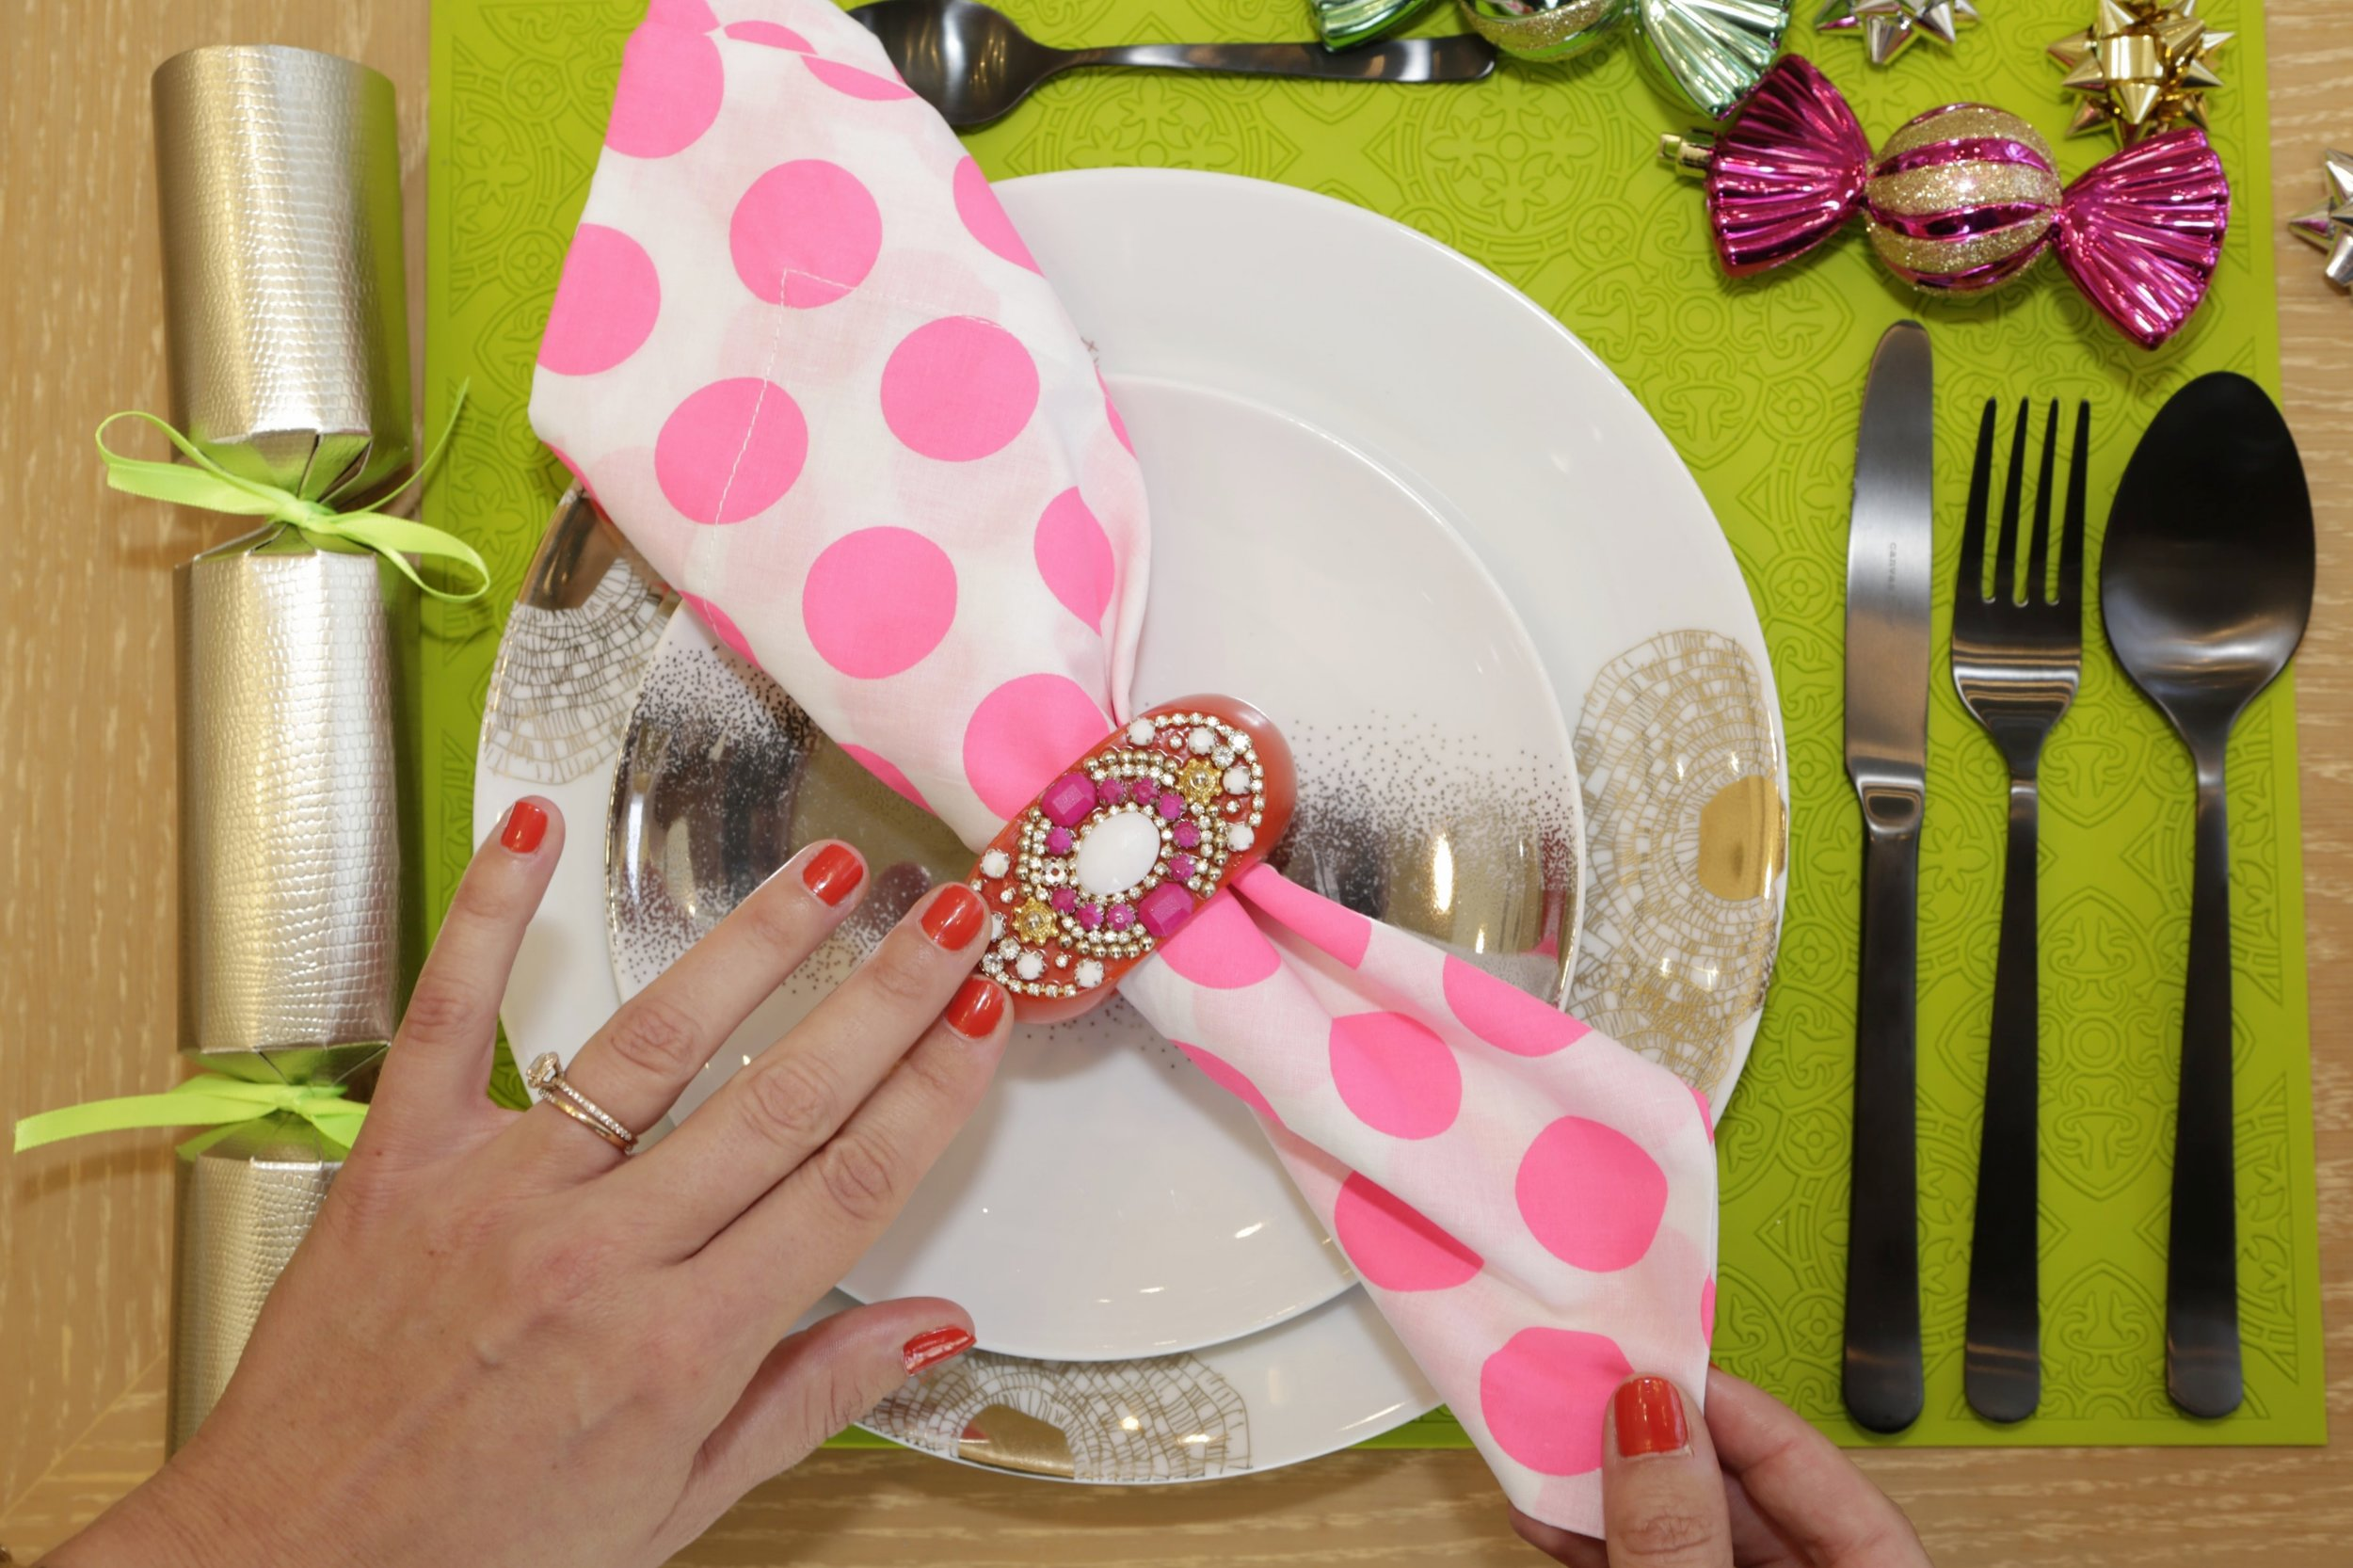 Breaking all the traditional rules of table styling (including the position of the knife?!?)